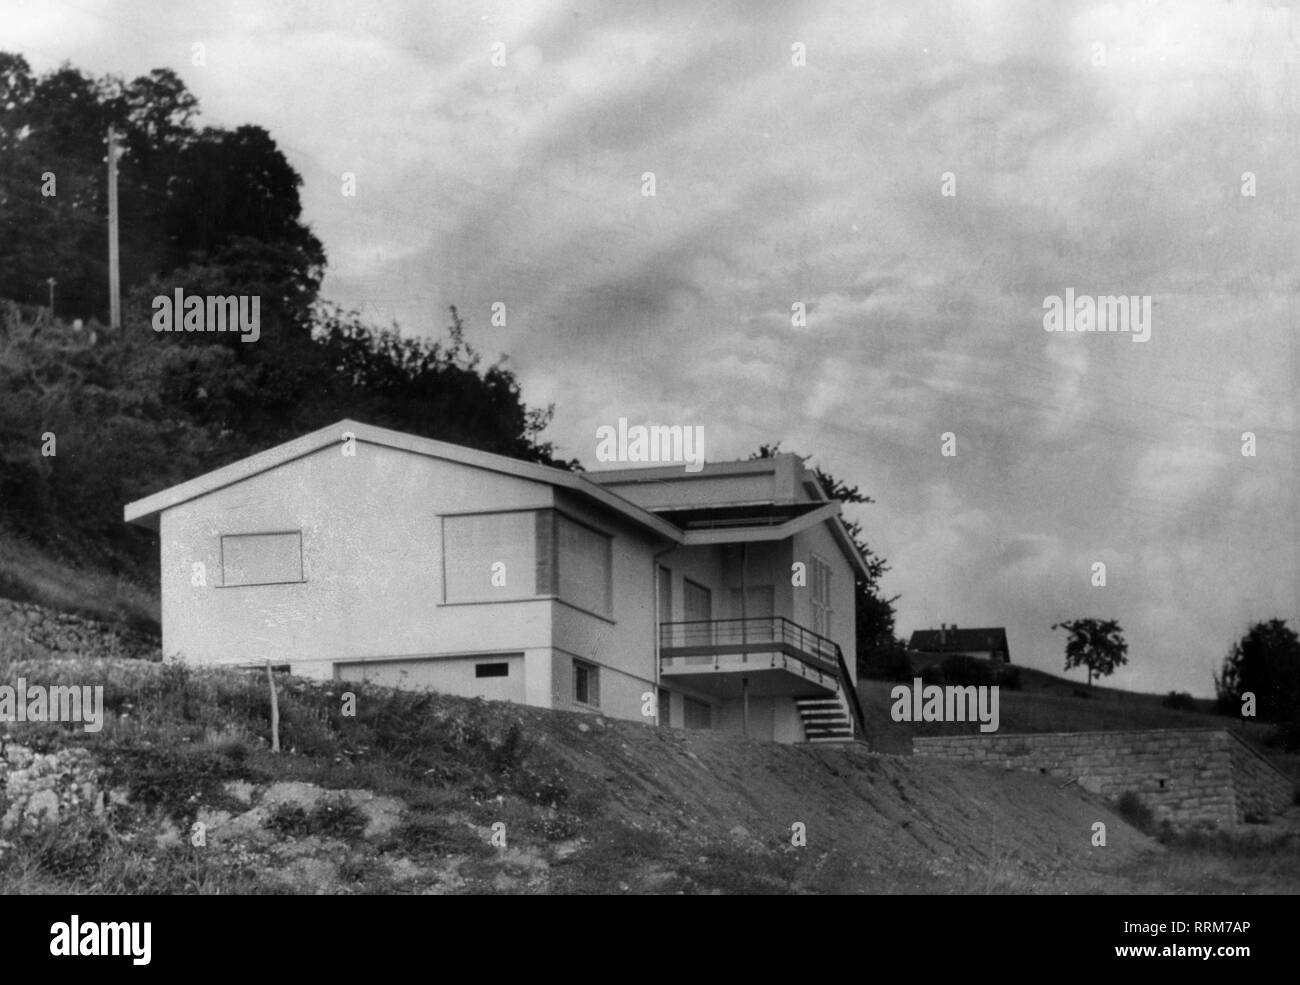 Globke, Hans, 10.9.1898 - 13. 2.1973, German jurist, State Secretary in the Federal Chancellory 28.10.1953 - 15.10.1963, his mansion in Chardonne, Waadt, Switzerland, exterior view, 1963, Additional-Rights-Clearance-Info-Not-Available - Stock Image